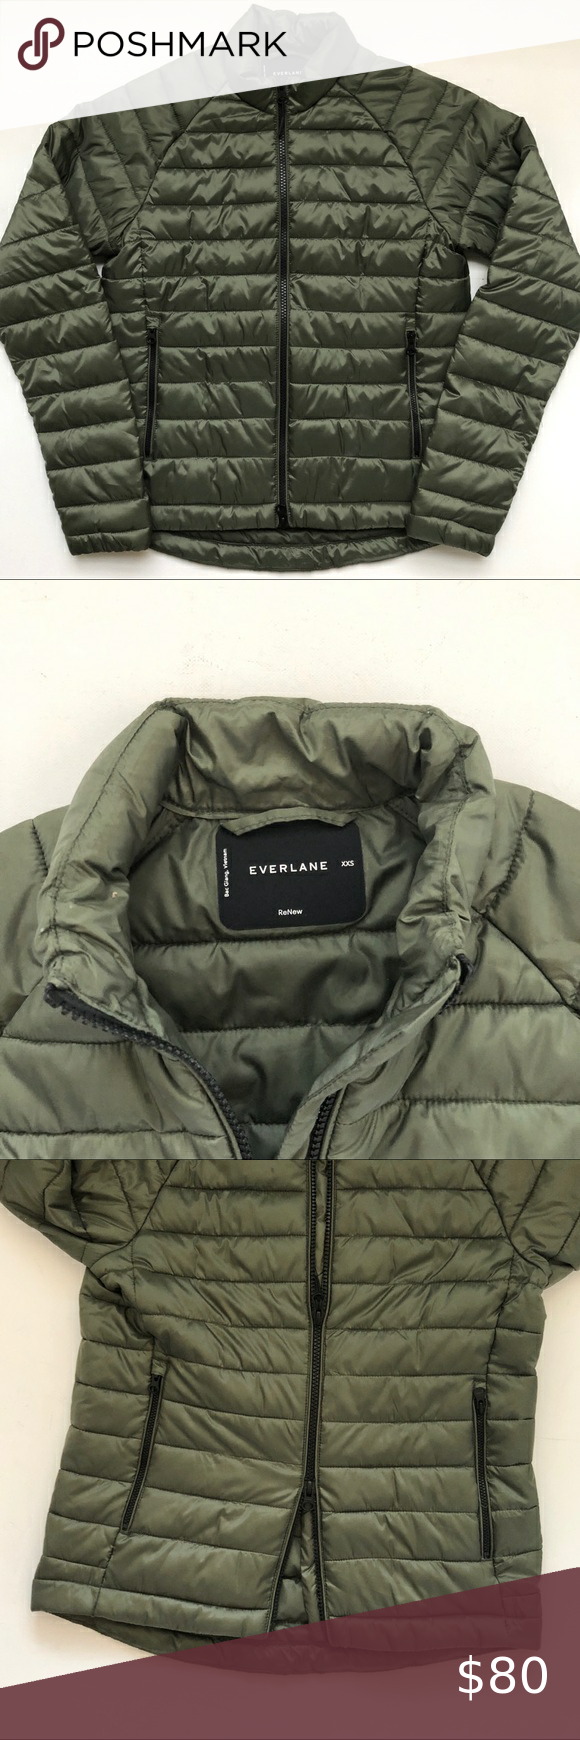 Sustainability Everlane Renew Puffer Jacket Xxs Versatile Wear Alone Or Layer Essential Basic From Quality Compa Green Puffer Jacket Jackets Puffer Jackets [ 1740 x 580 Pixel ]